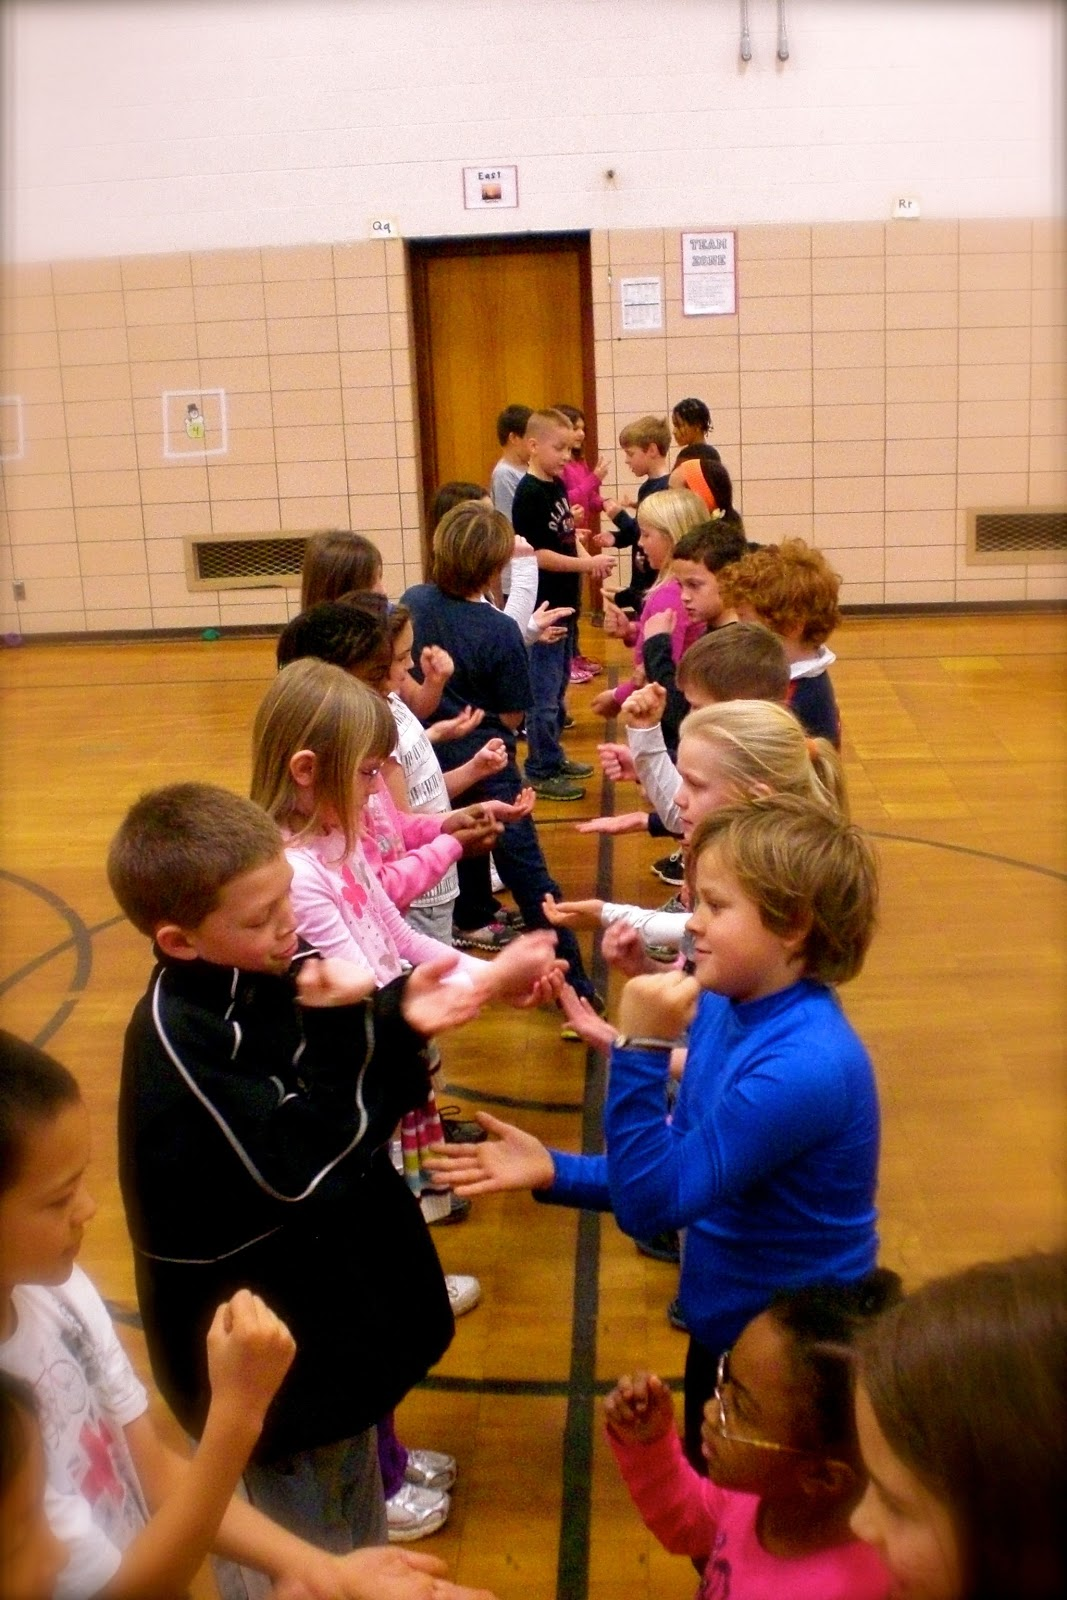 two articles about the importance of physical education in elementary education Using differentiated instruction in physical education kathleen ellis, lauren lieberman important relationships information to investigate: mr estes teaches elementary physical education and his first grade class is one of diverse.